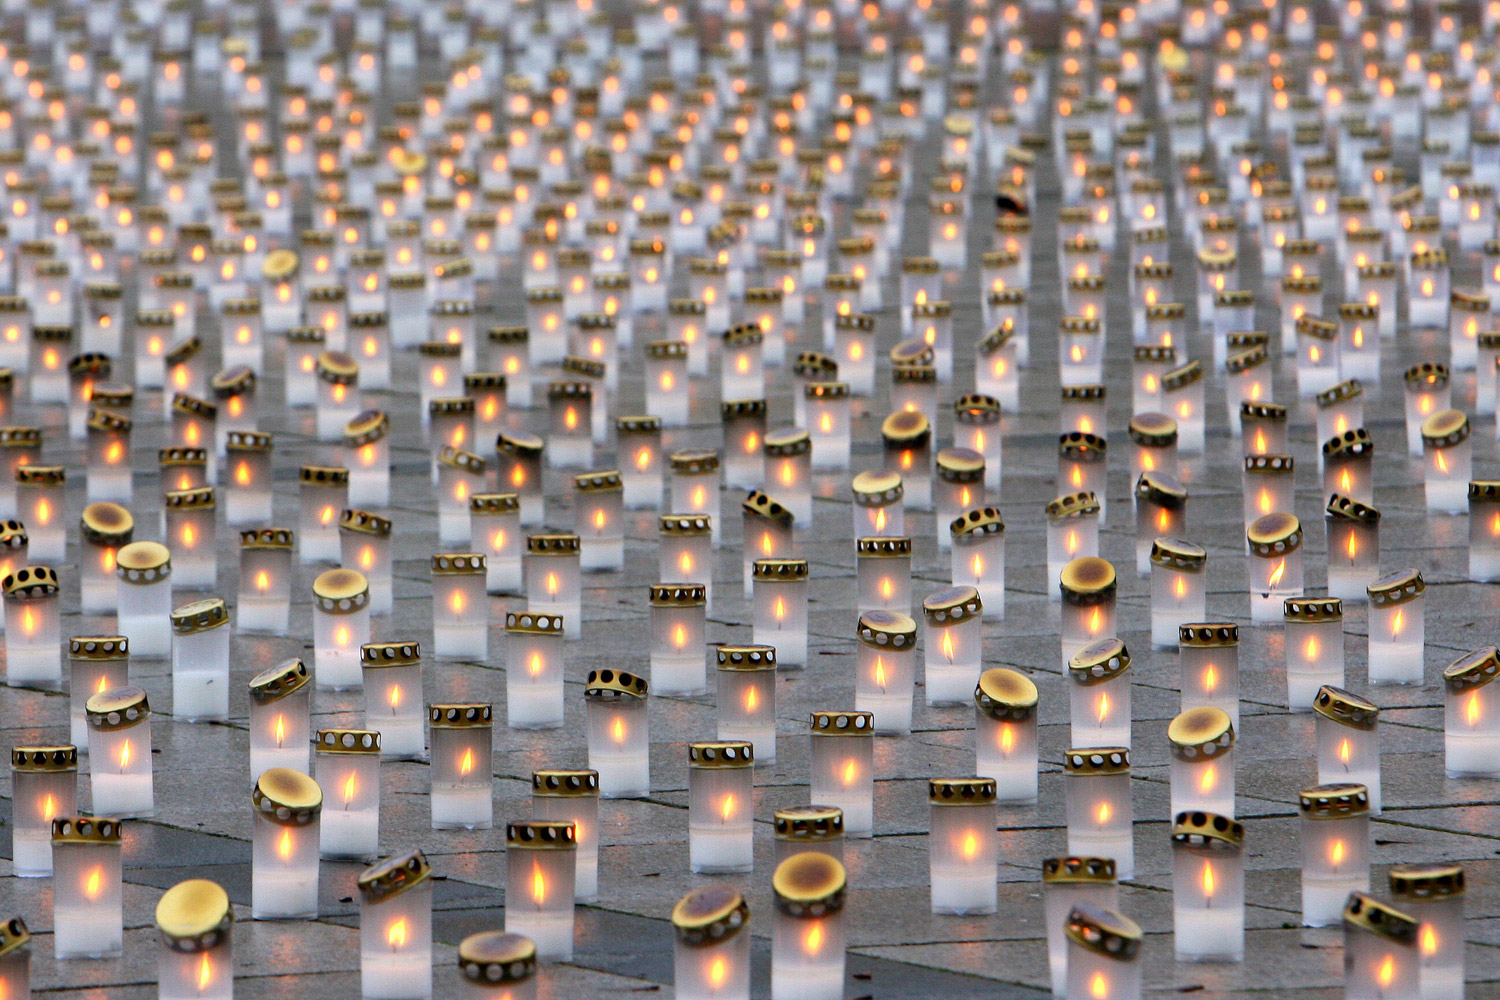 November 20, 2011. 15, 377 candles are lit during a campaign in memory of those killed in road accidents at the Cathedral Square in Vilnius. Each candle symbolizes a victim.